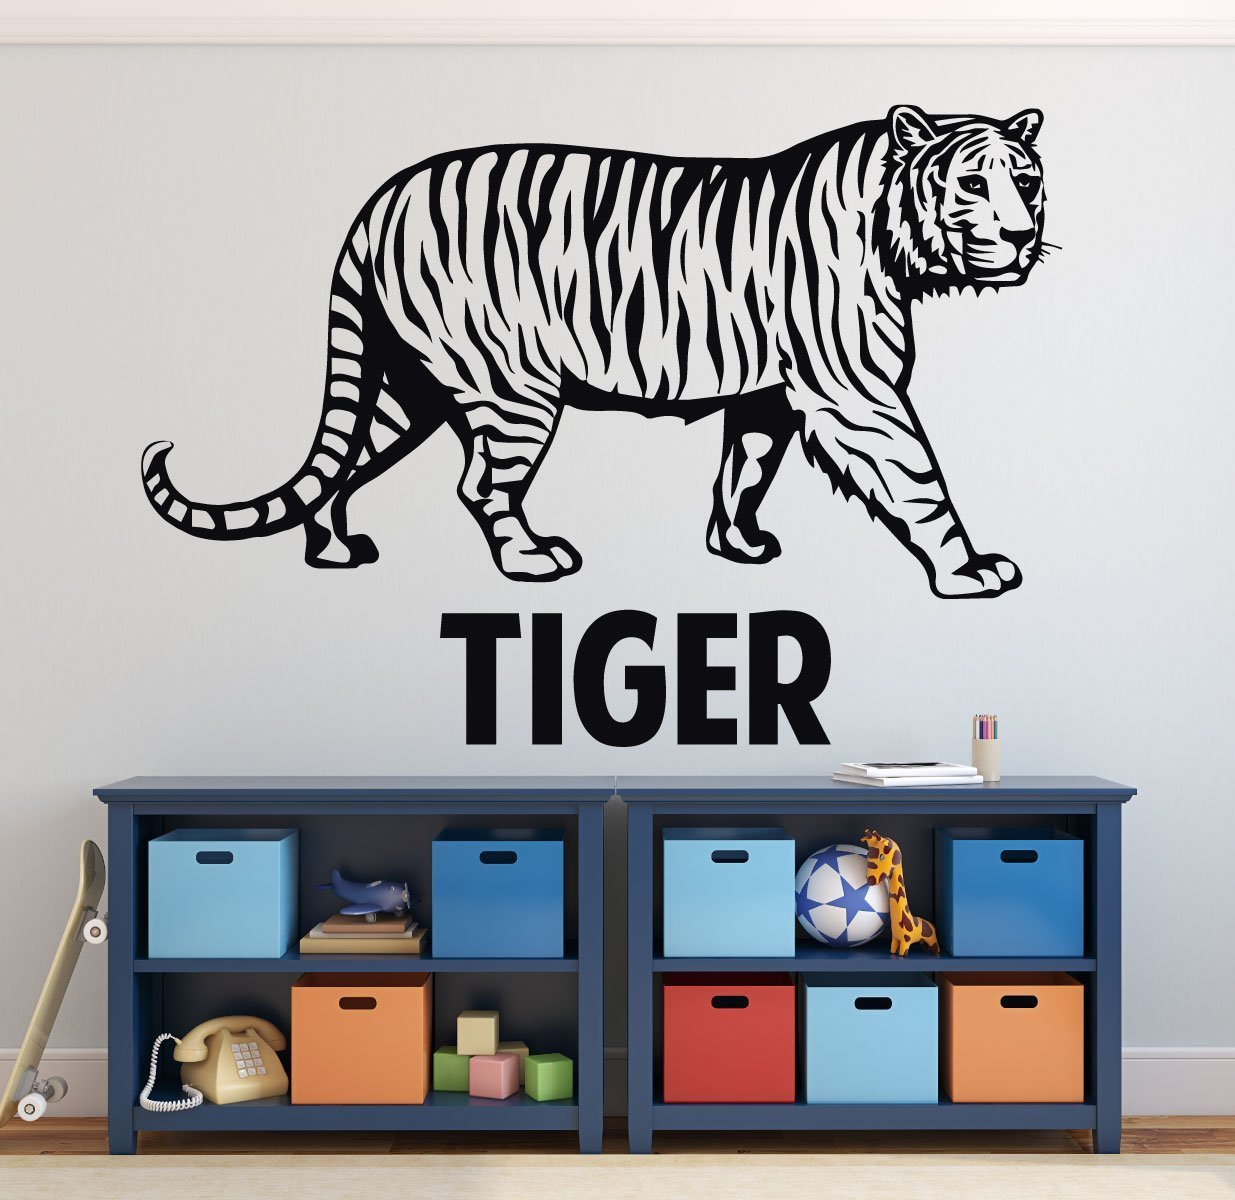 Zoo Animal Wall Decals - Tiger - Zoo Animal